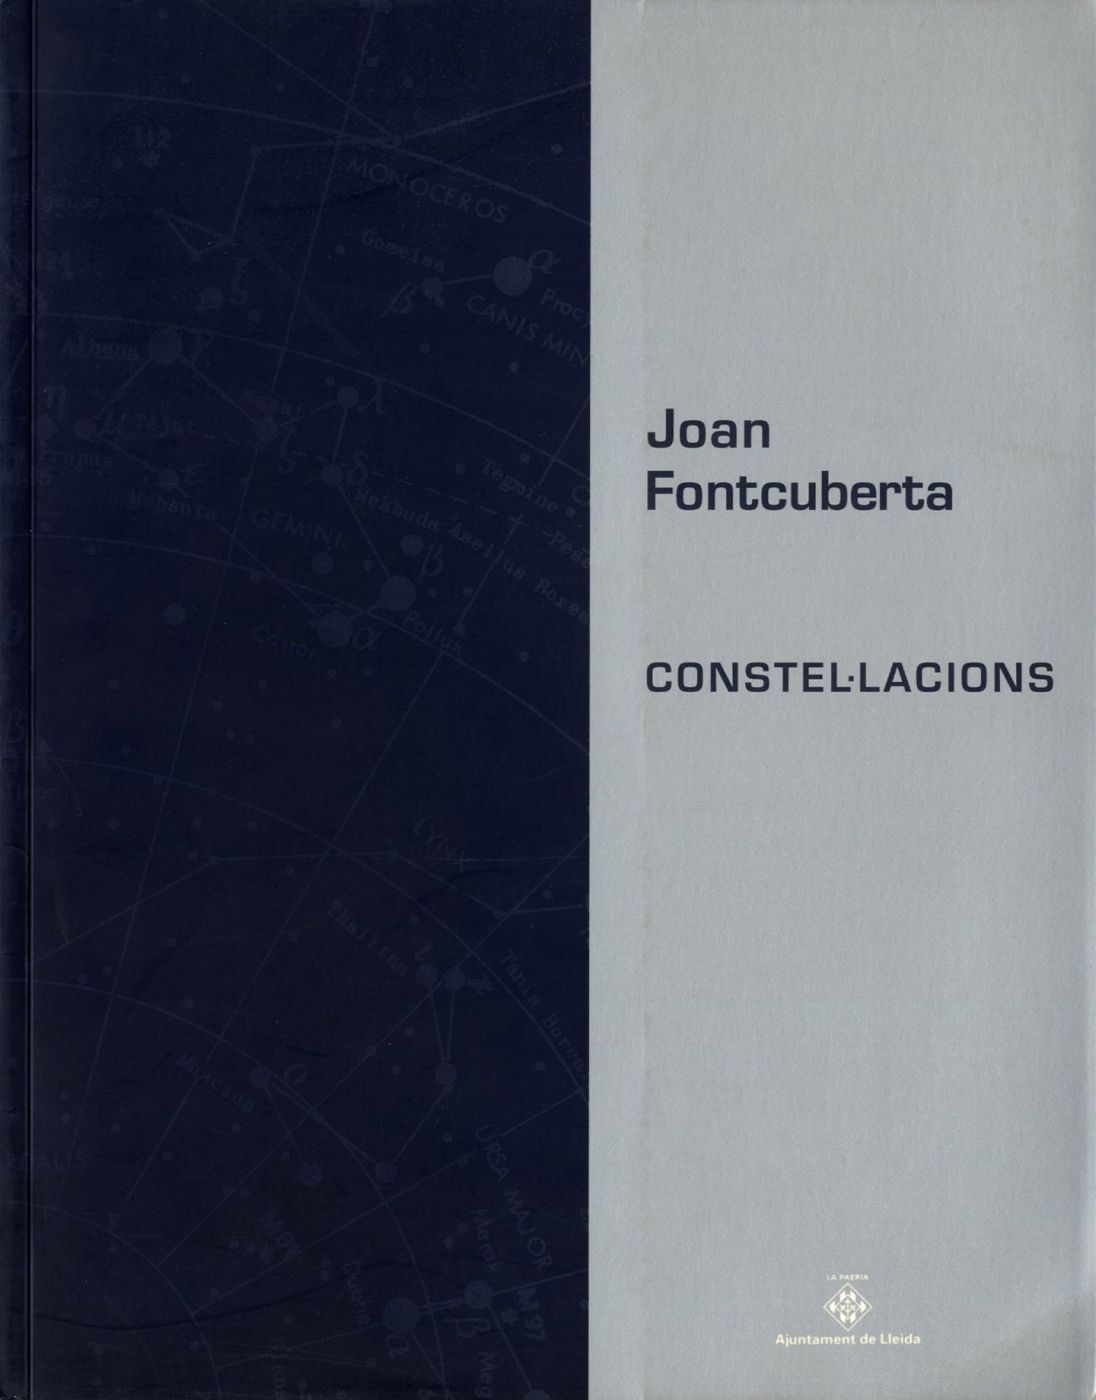 Joan Fontcuberta: Constellacions (Constellations)